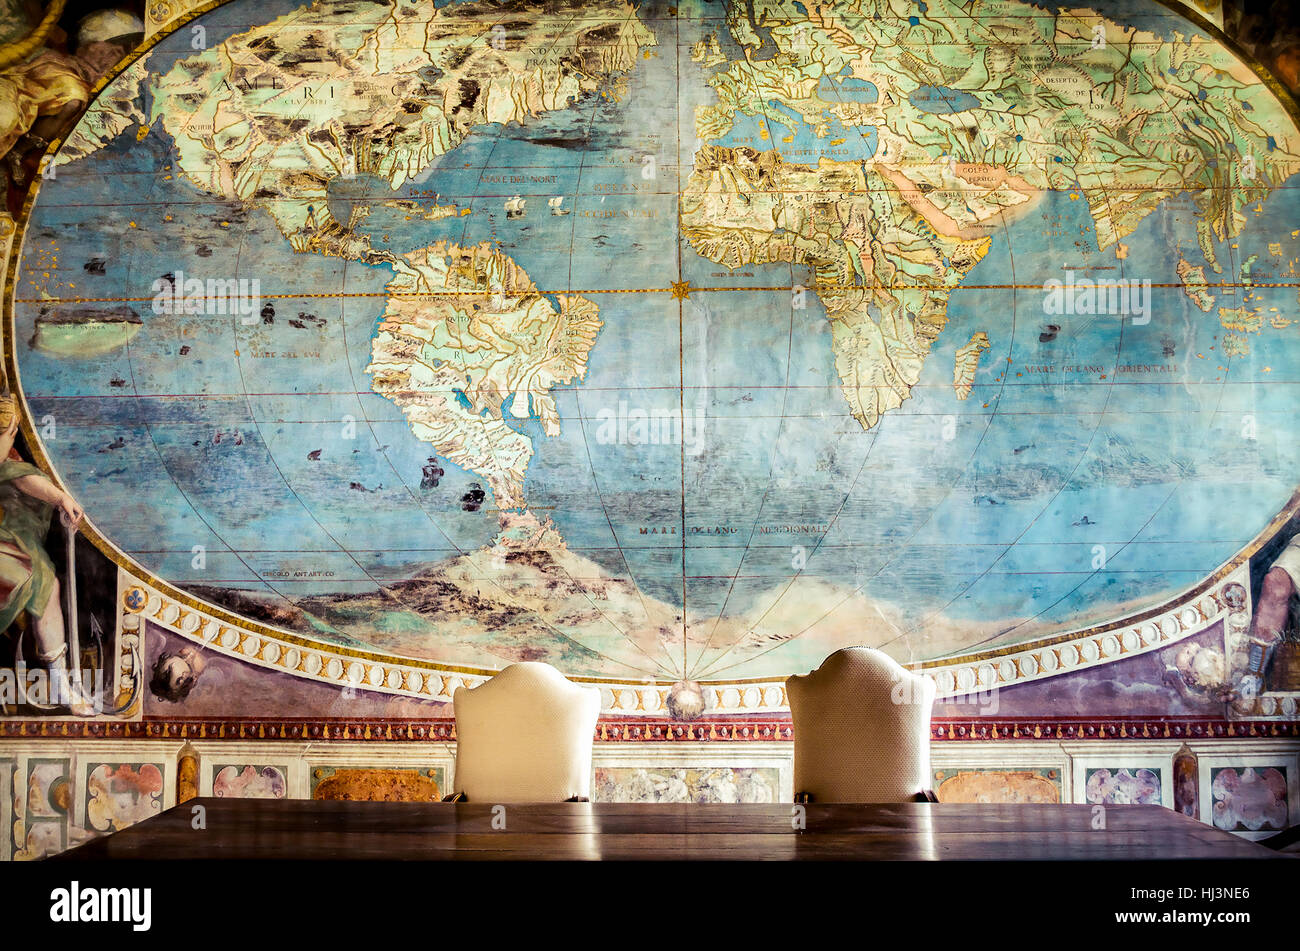 freemasonry controlling the world conspiracy Caprarola a big table with two empty chair and  an old world map on - Stock Image